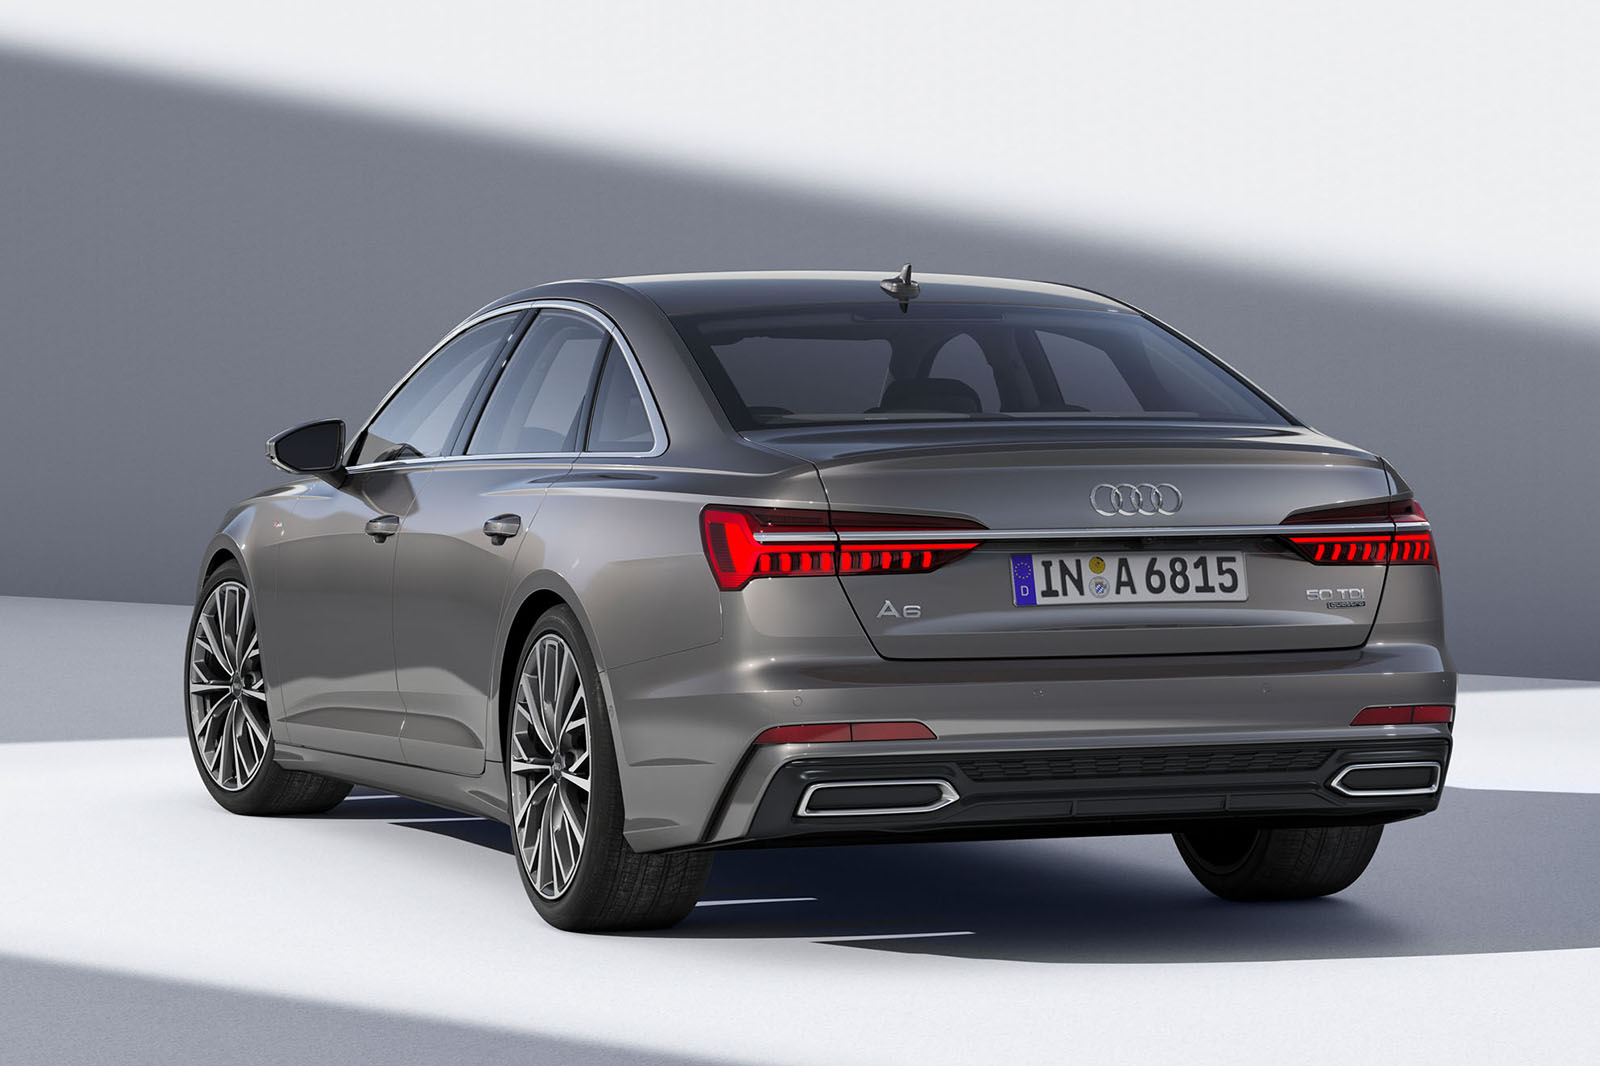 New Audi A Guns For Series With Mildhybrid Power And A Cabin - Car audi a6